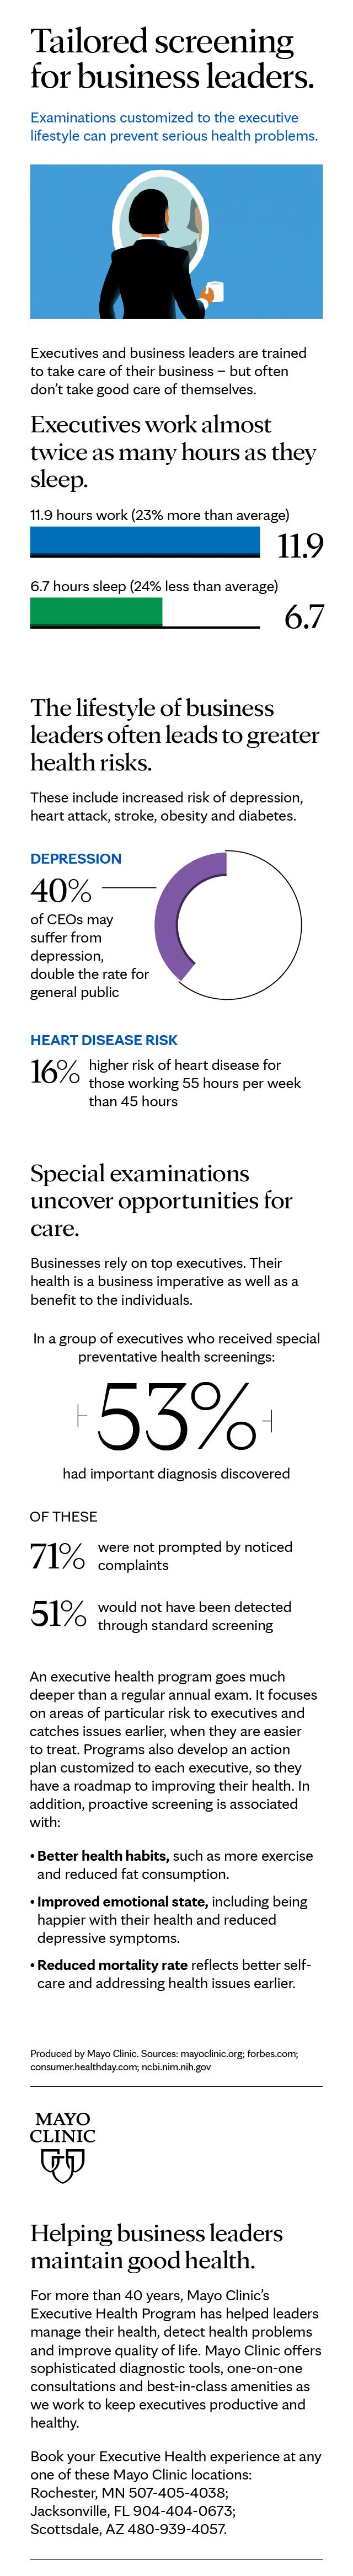 infographic for executive health and screening business leaders